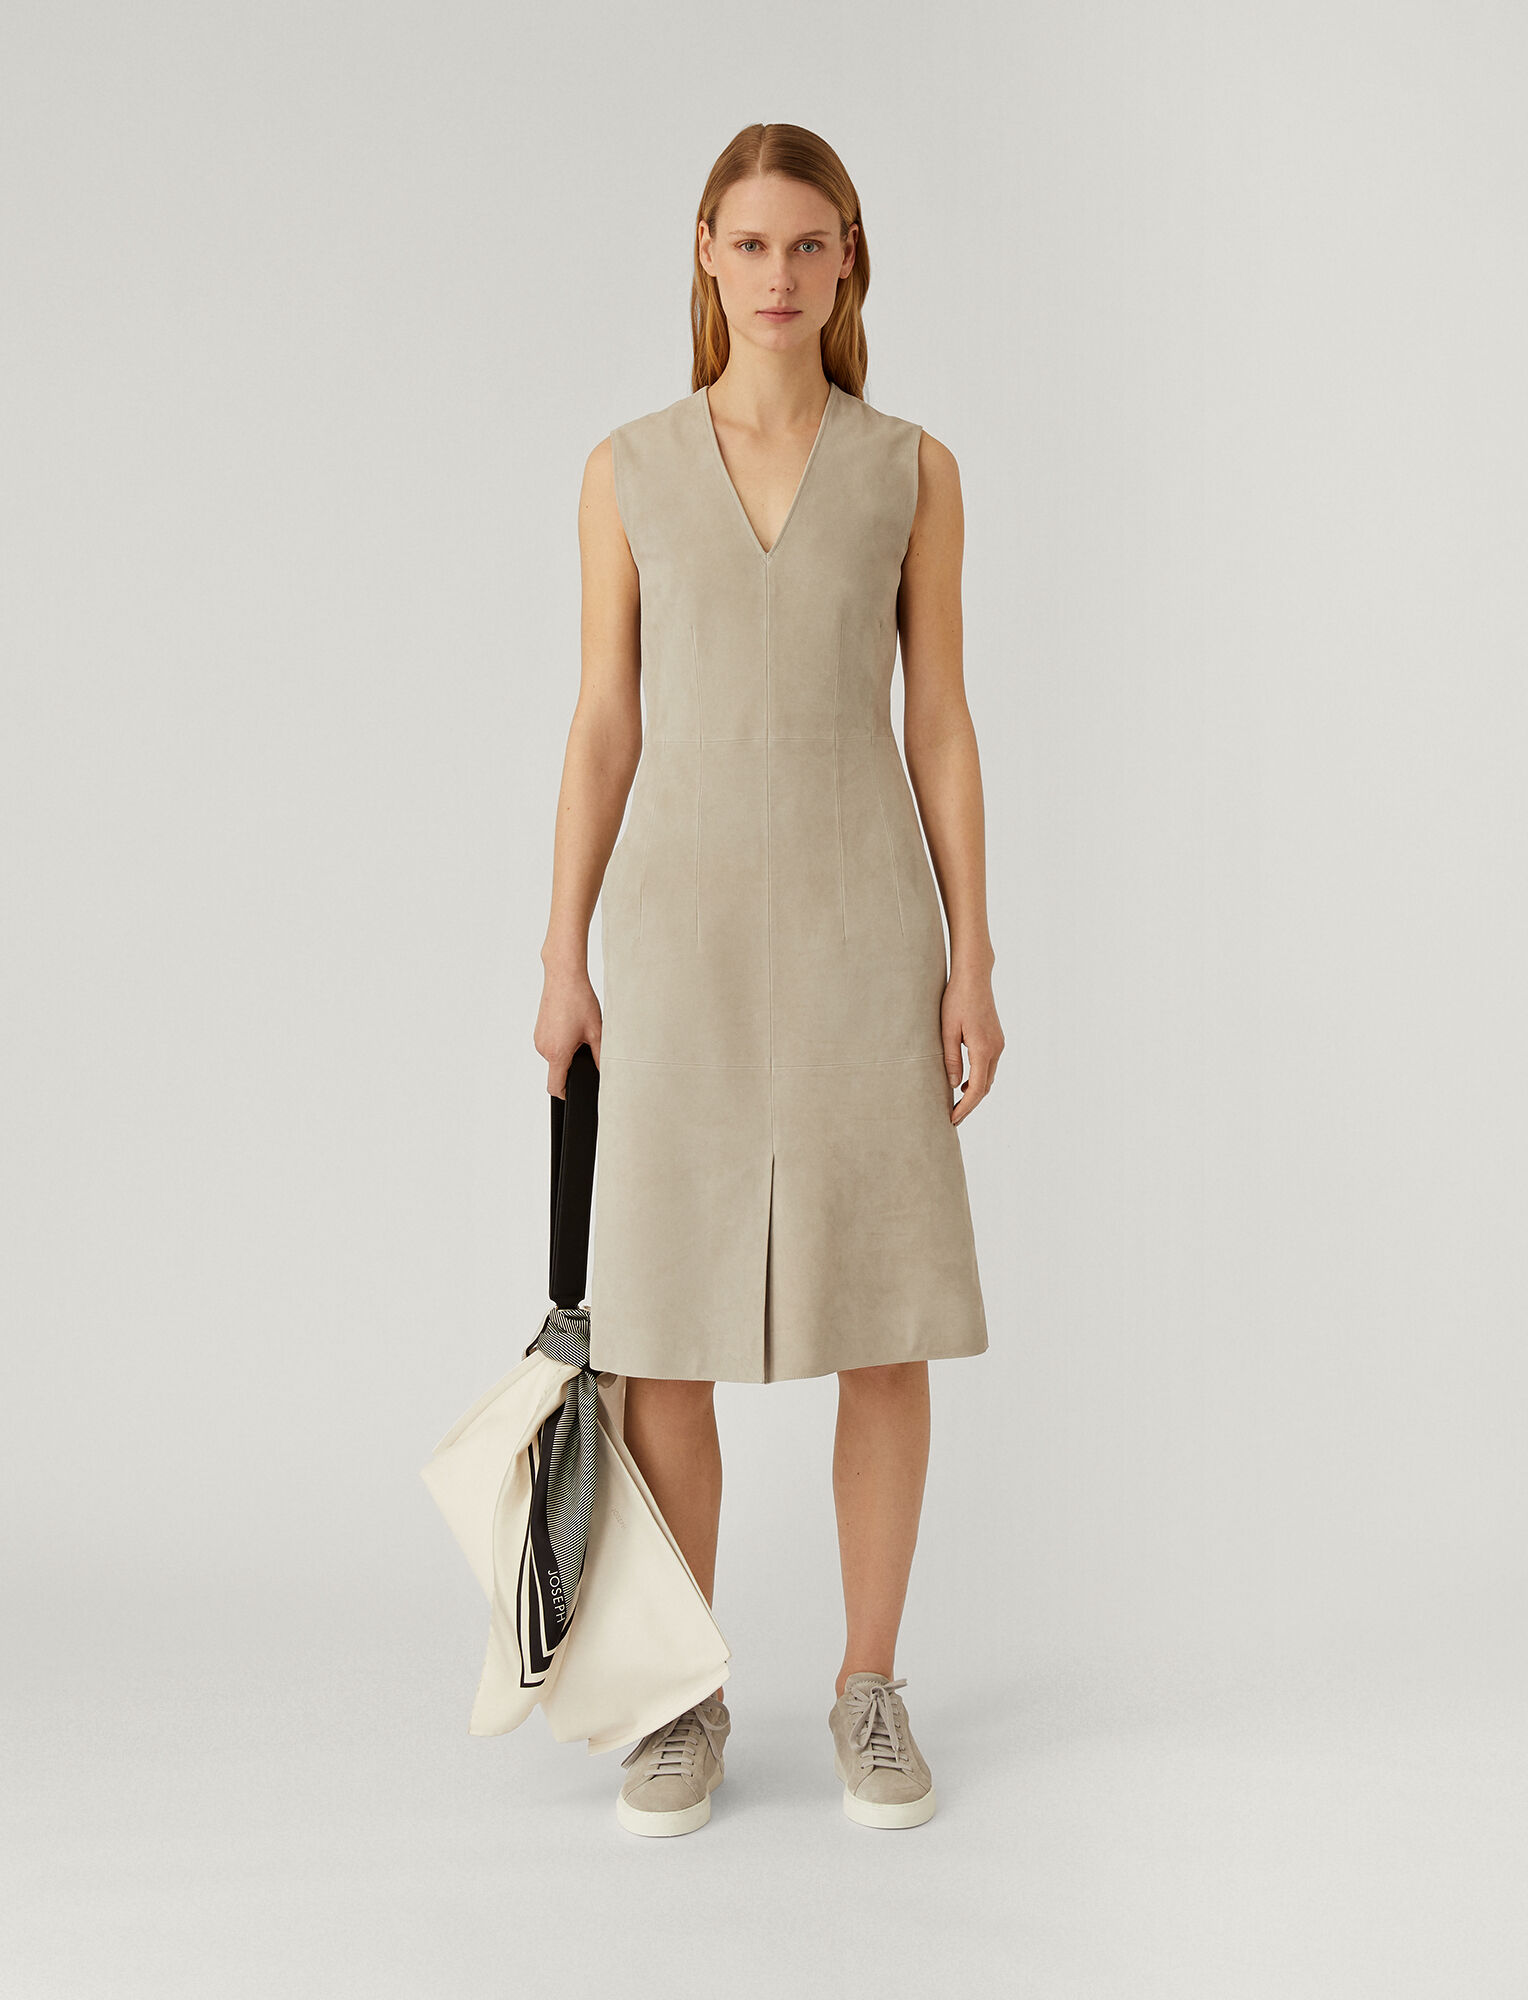 Joseph, Suede Nappa Cover Danty Dress, in CLOUD